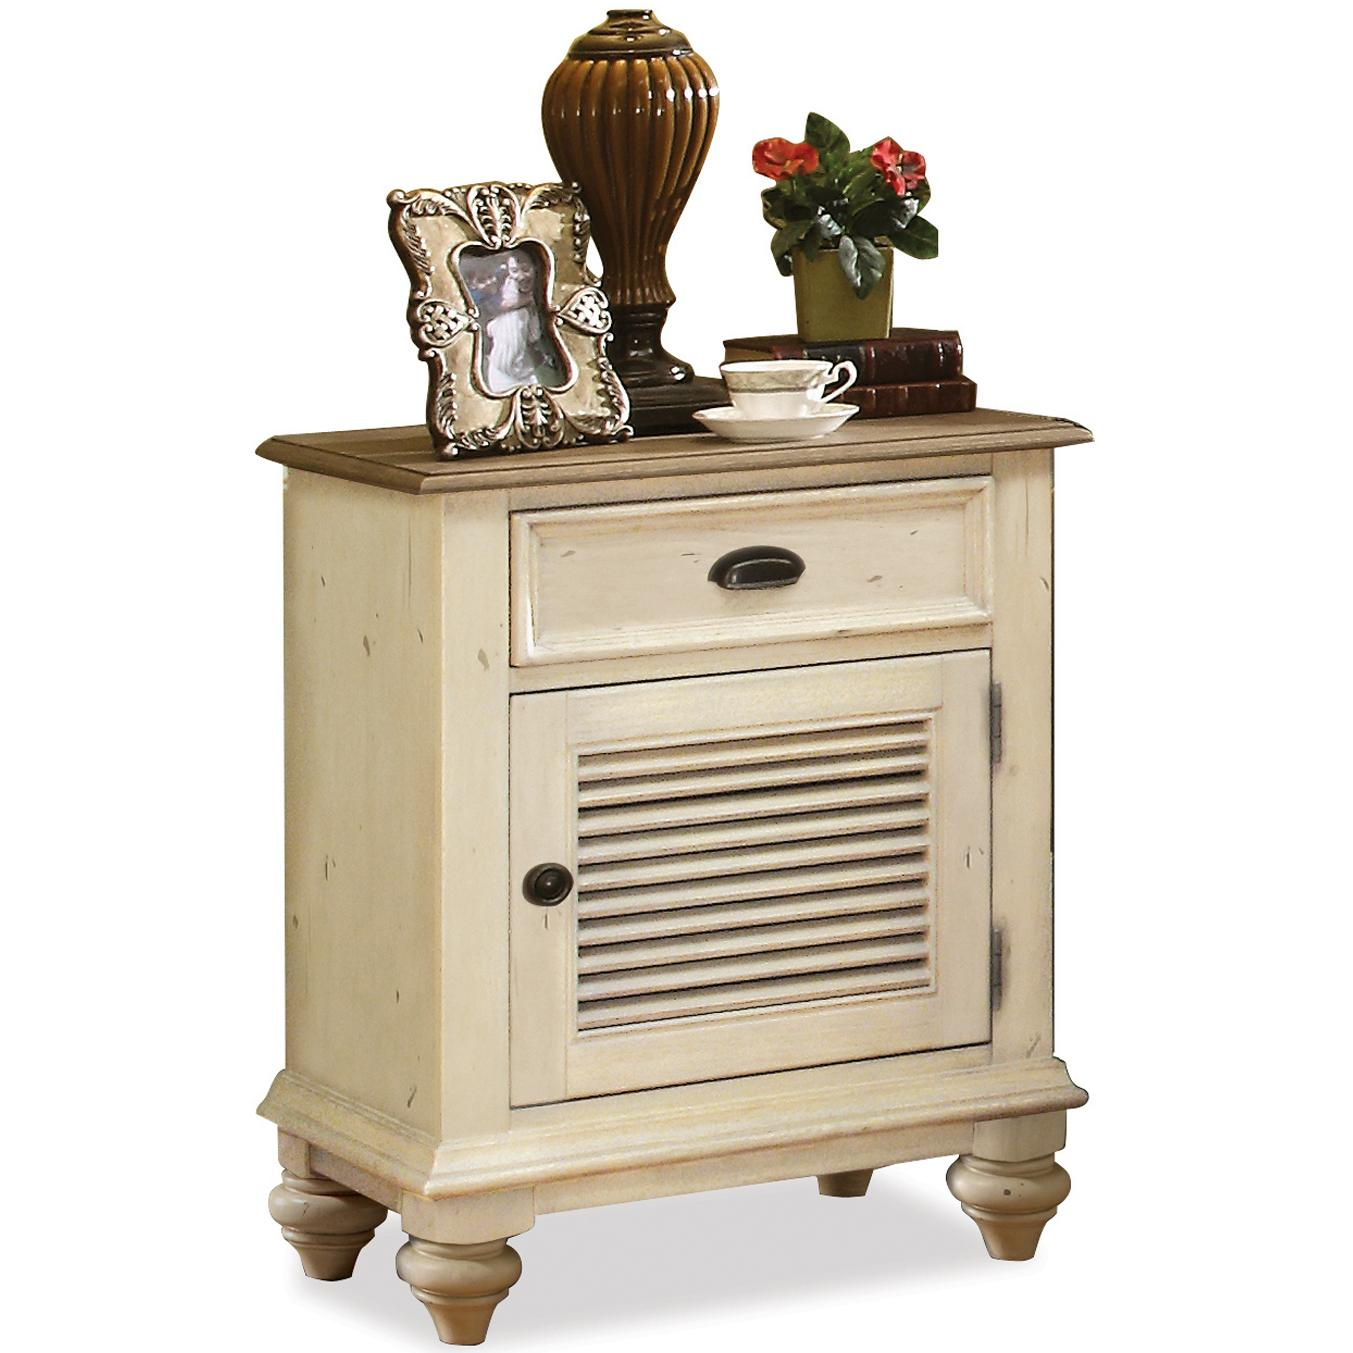 Riverside Furniture Coventry Two Tone Shutter Door Nightstand - Item Number: 32569